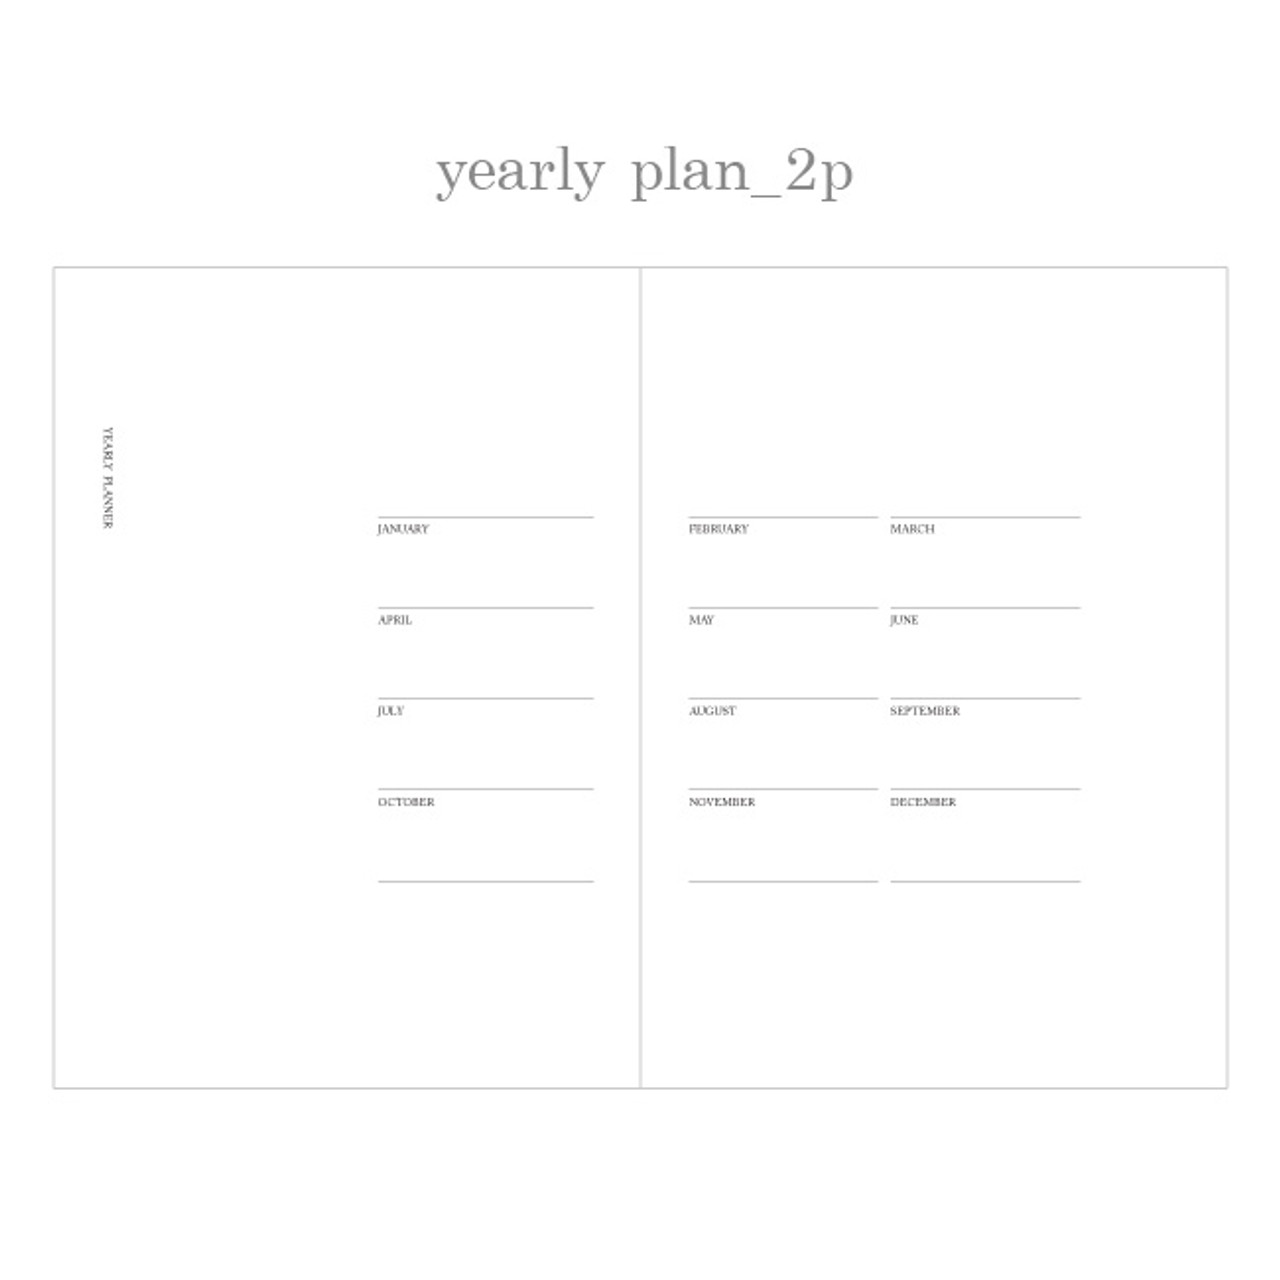 jstory slow and simple monthly undated planner notebook fallindesign